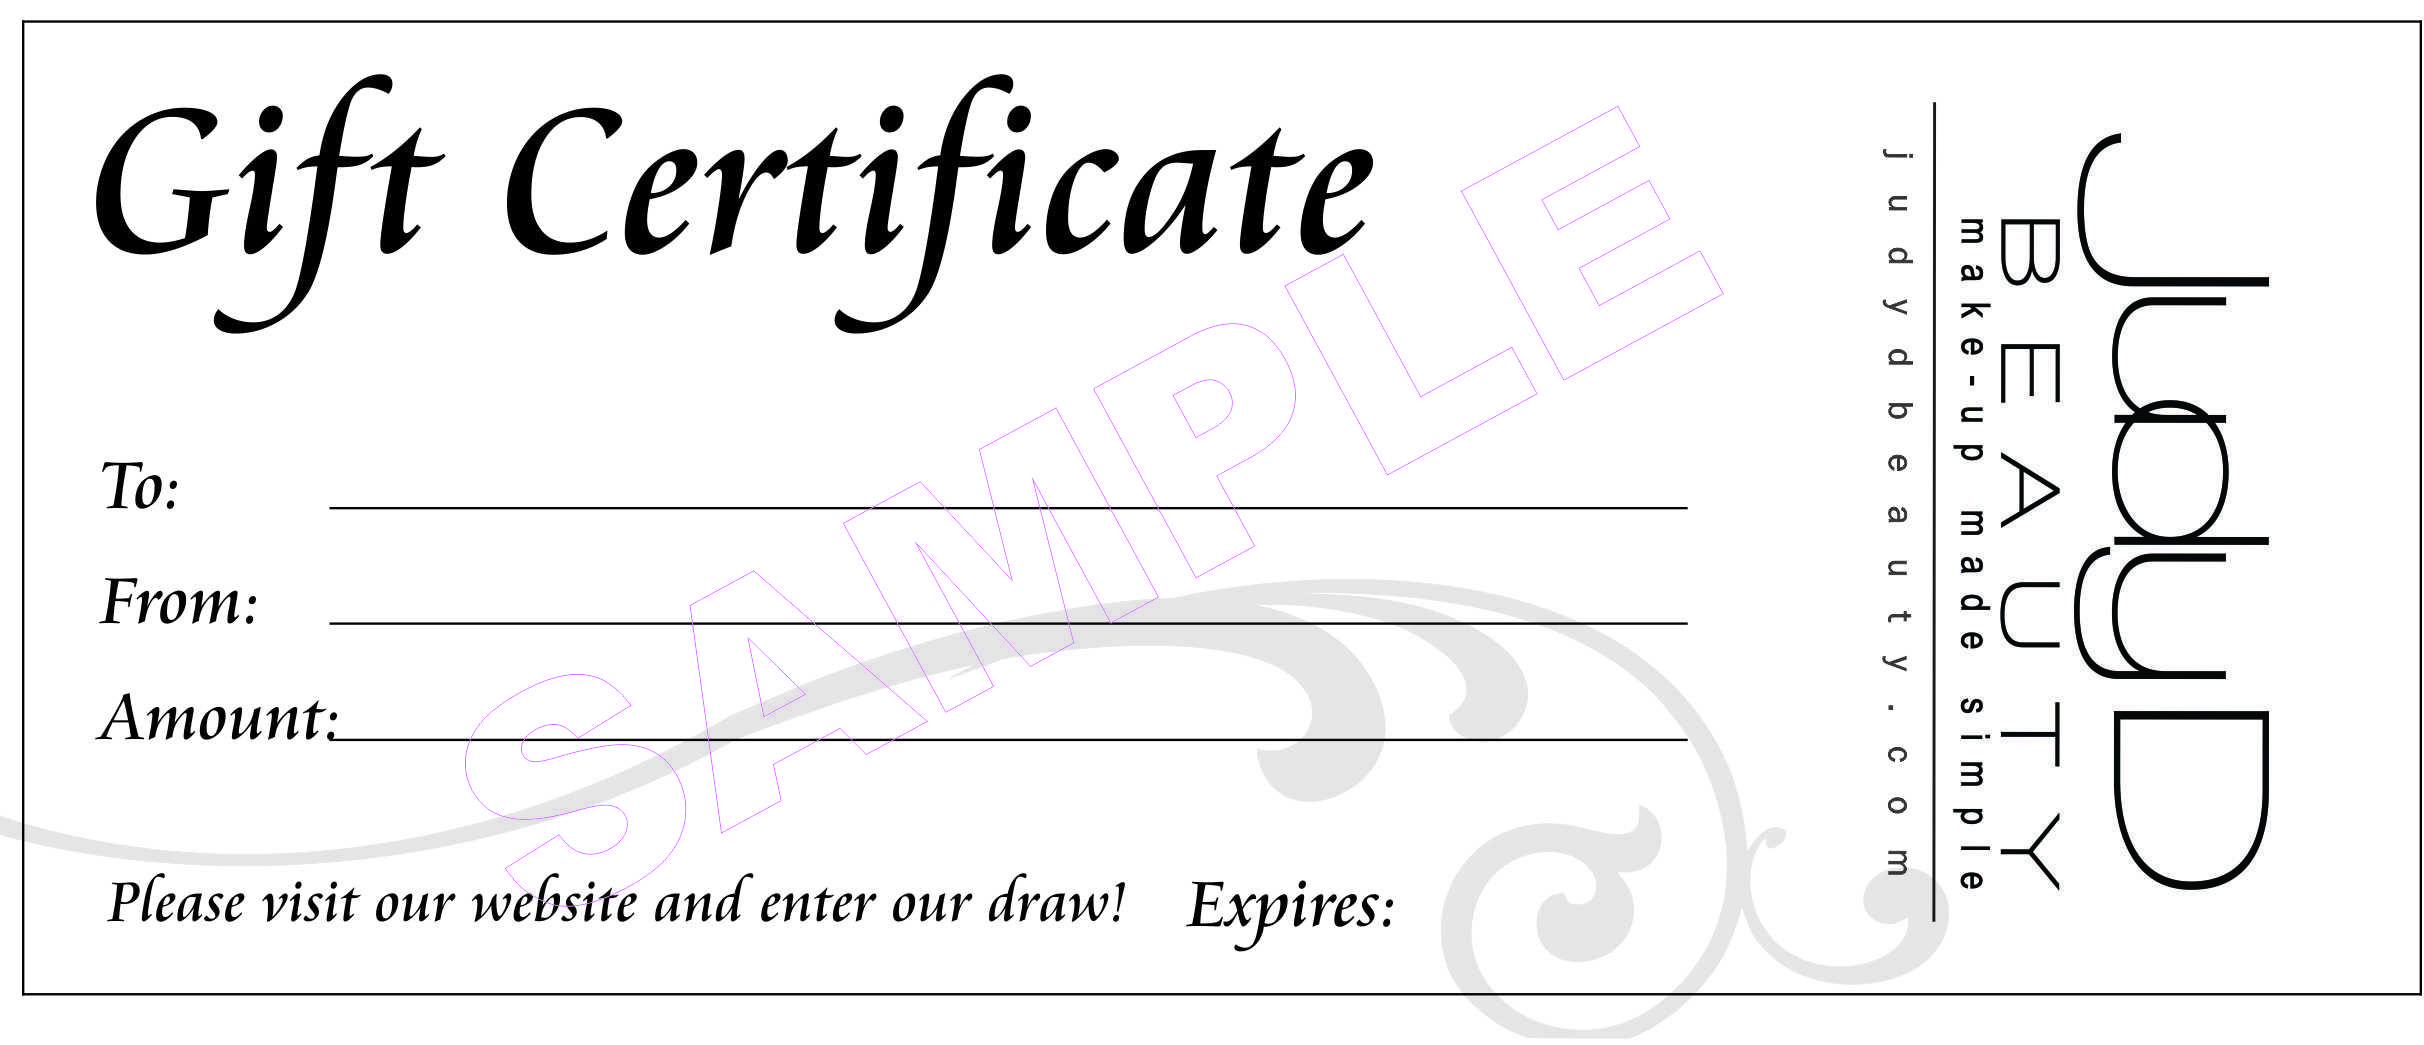 Gift Certificate Judy Beauty Makeup Artist Voucher Coupon Template